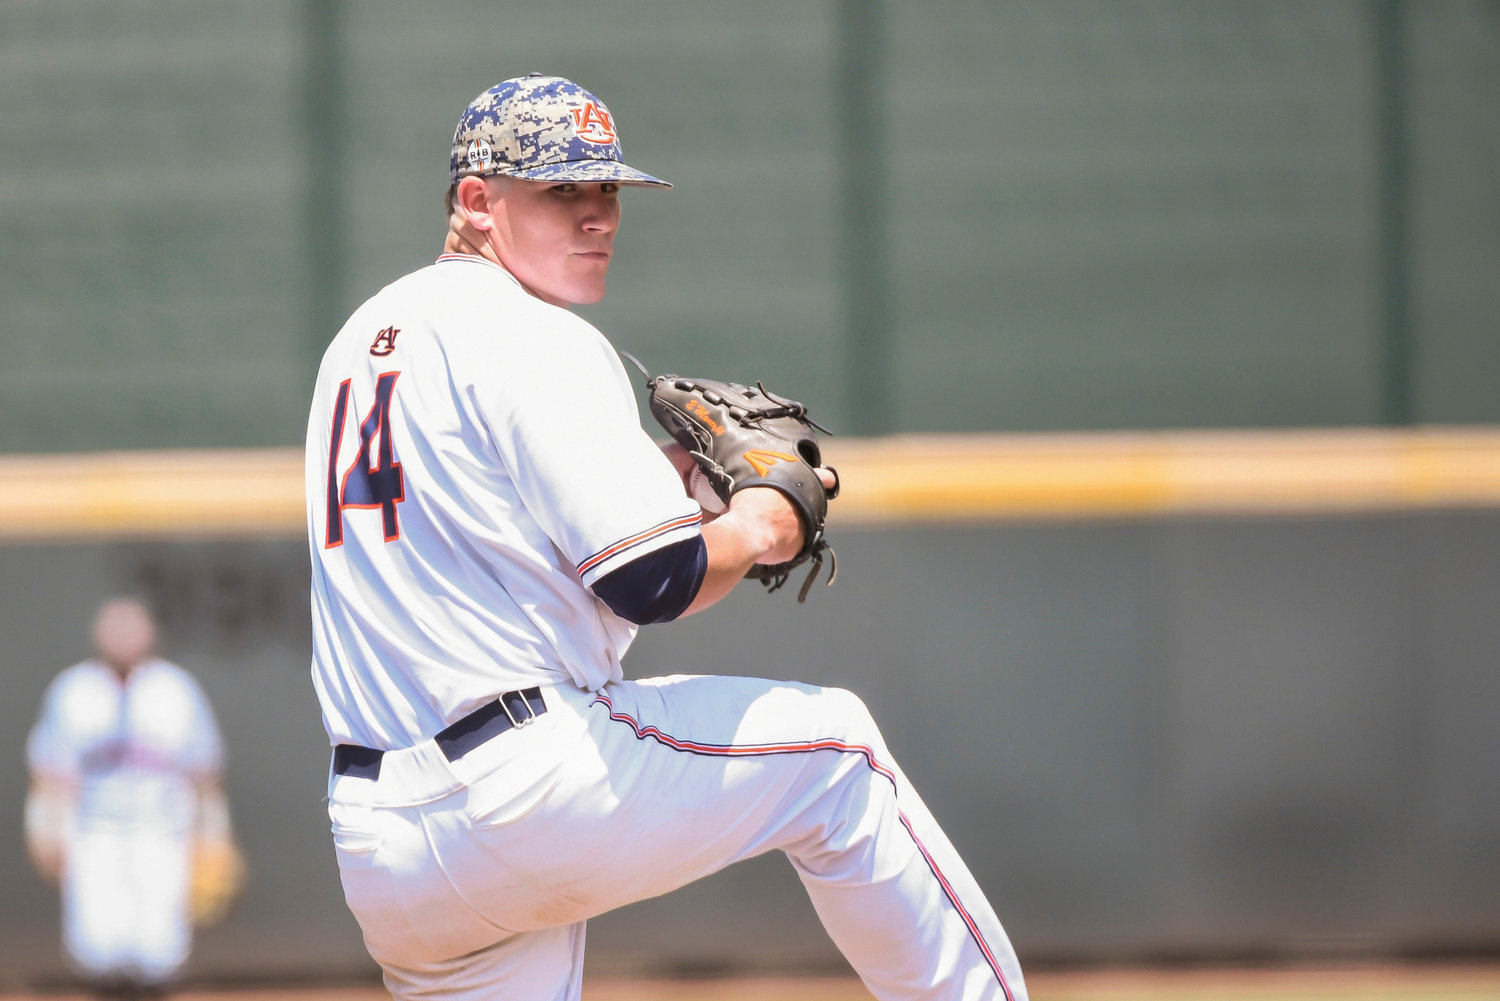 Cartersville High graduate and Auburn junior Elliott Anderson picked up the win in relief during Game 1 of the Tigers' Super Regional series against North Carolina. Anderson also pitched three scoreless innings in Game 2 Sunday, although Auburn came up short in a 2-0 defeat. The Tigers bounced back Monday with a 14-7 rout of the Tar Heels to qualify for the College World Series for the fifth time in program history.